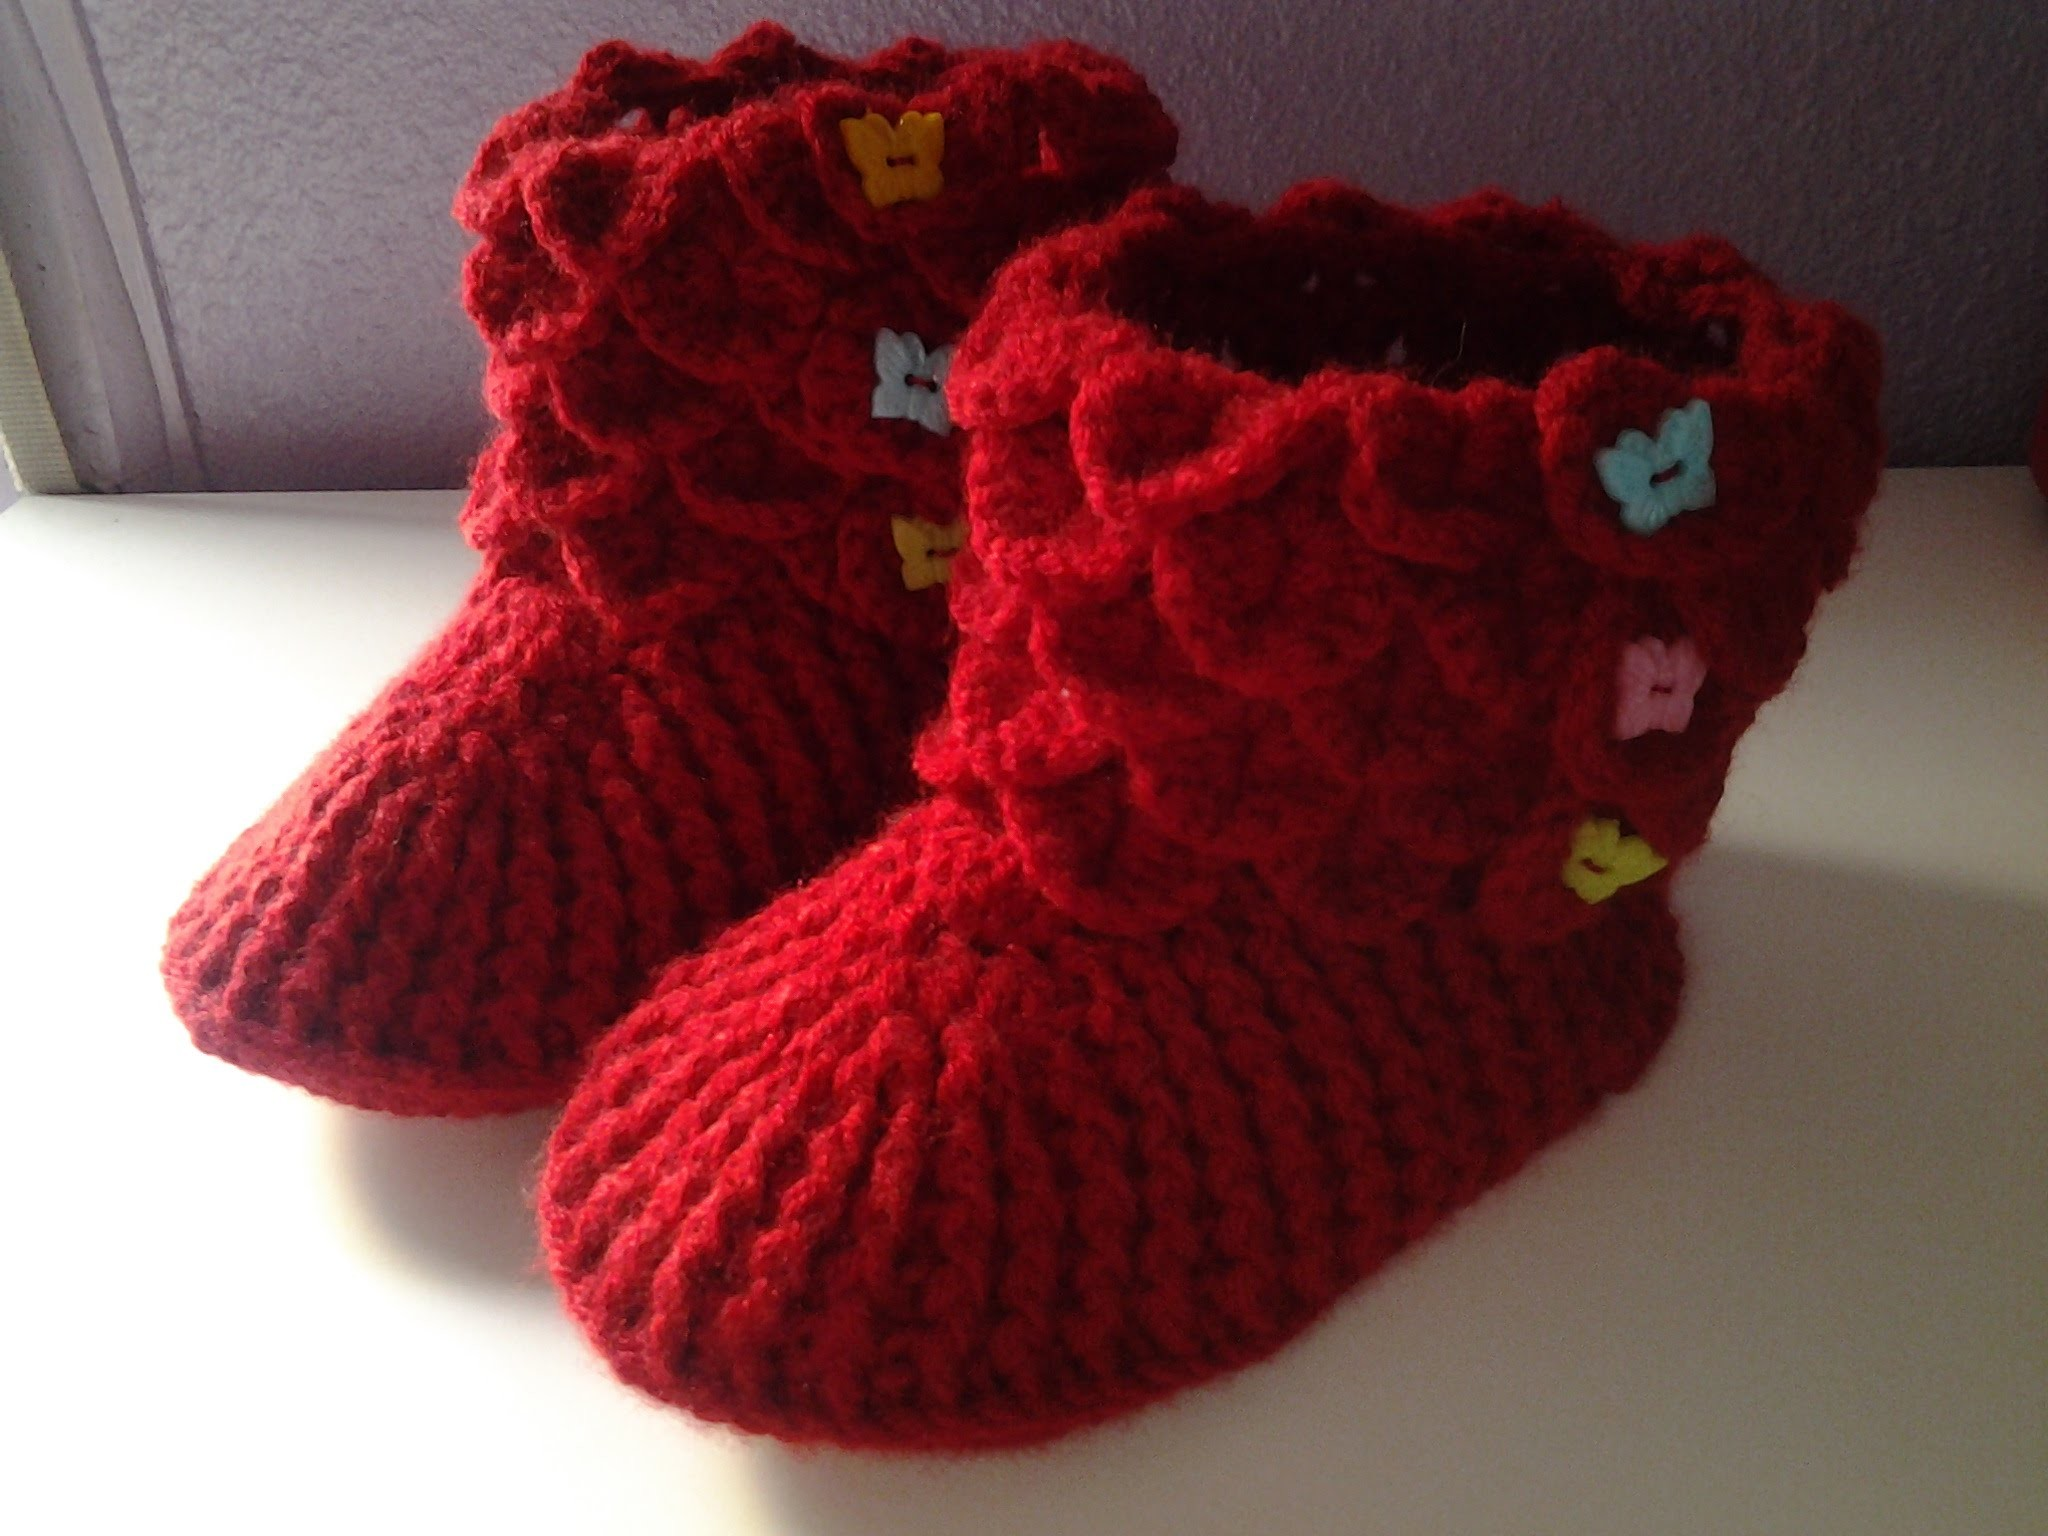 Botines cocodrilo a crochet (ganchillo)  4 #tutorial DIY